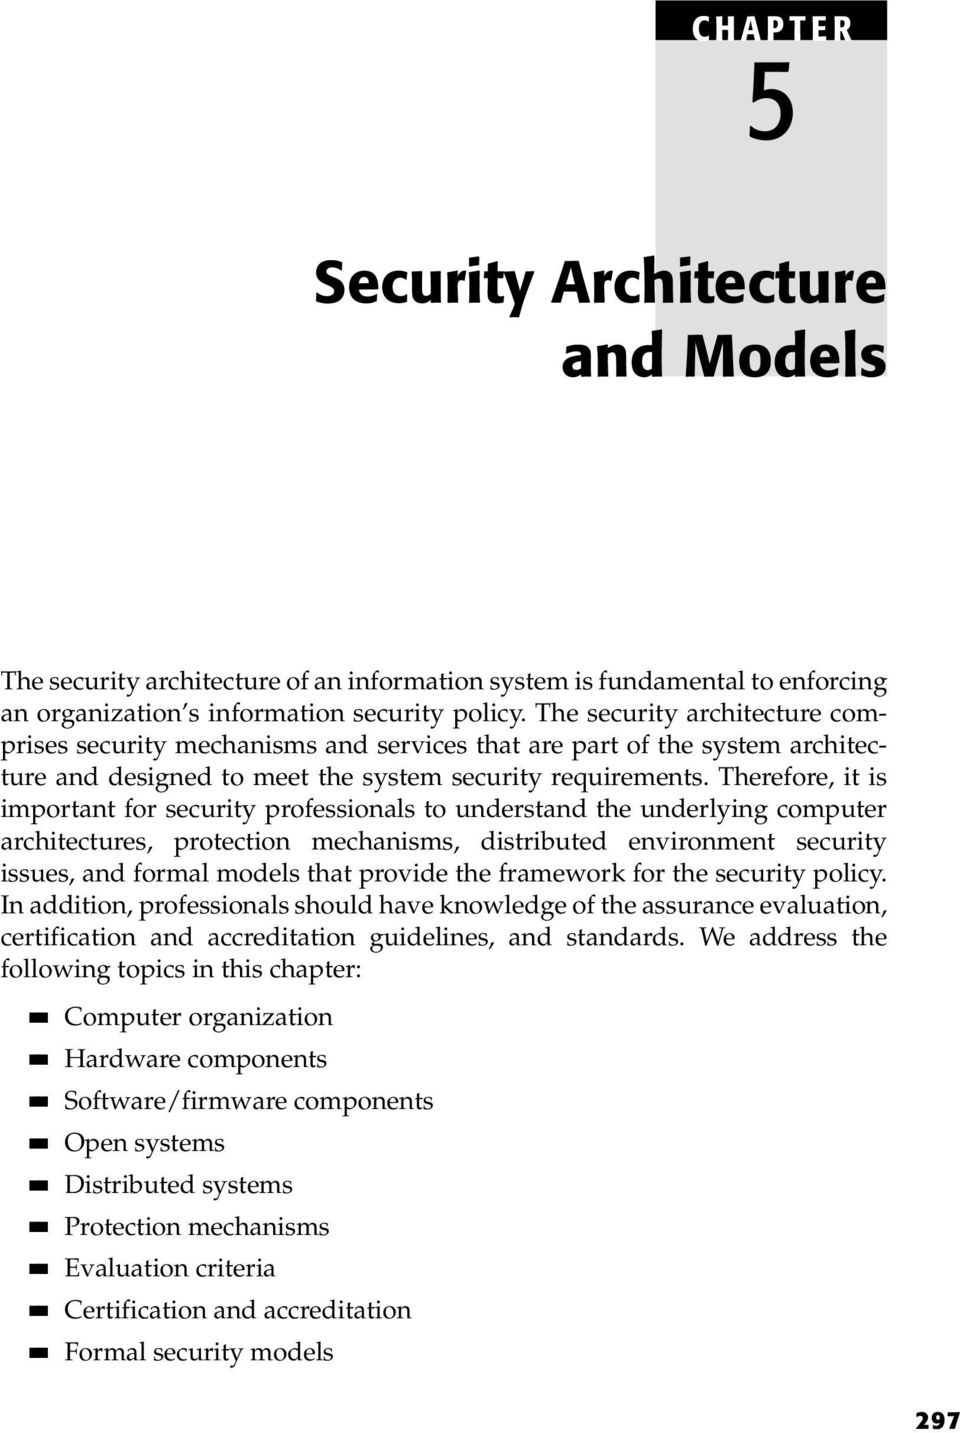 Therefore, it is important for security professionals to understand the underlying computer architectures, protection mechanisms, distributed environment security issues, and formal models that